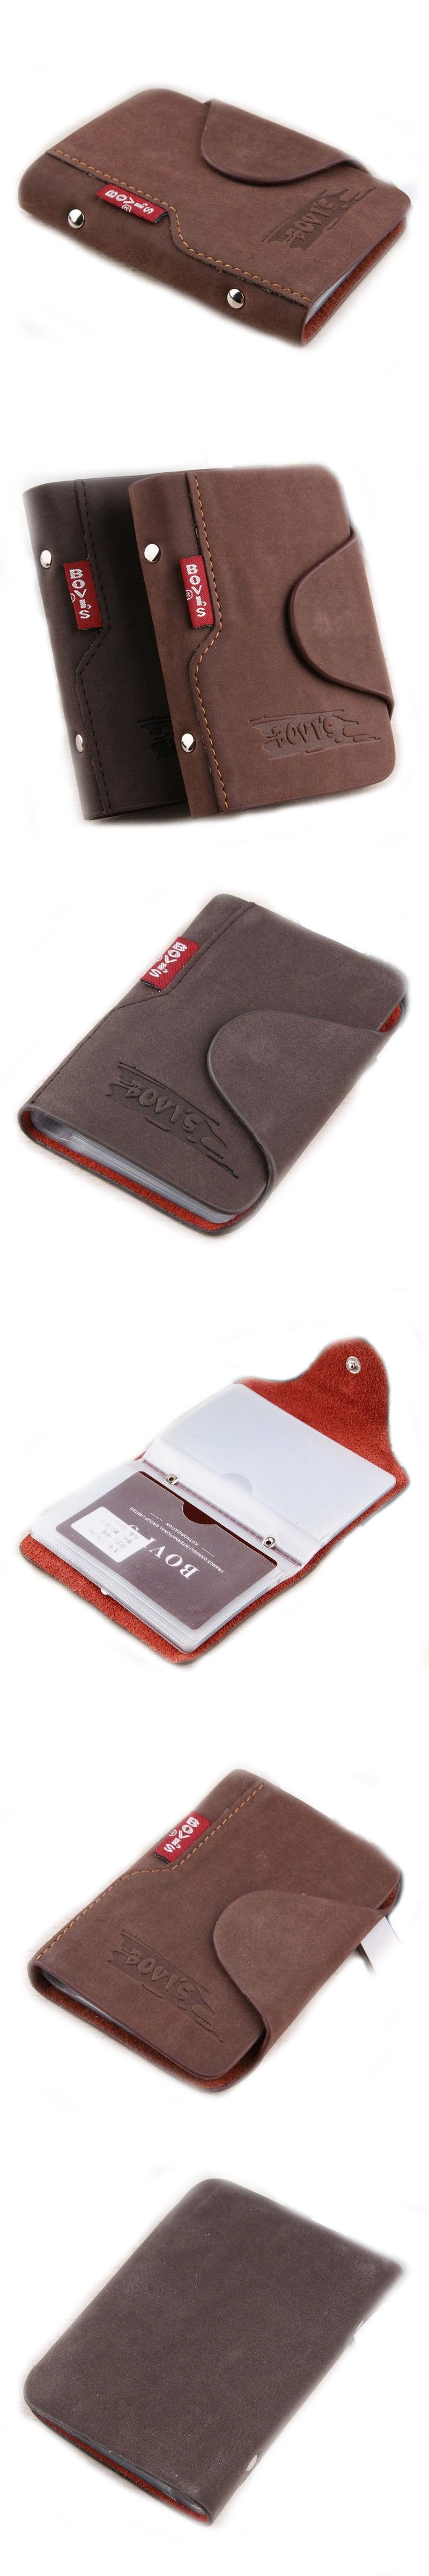 BOVIS 1pc Genuine Leather Business Cards Holder Credit Card Cover ...